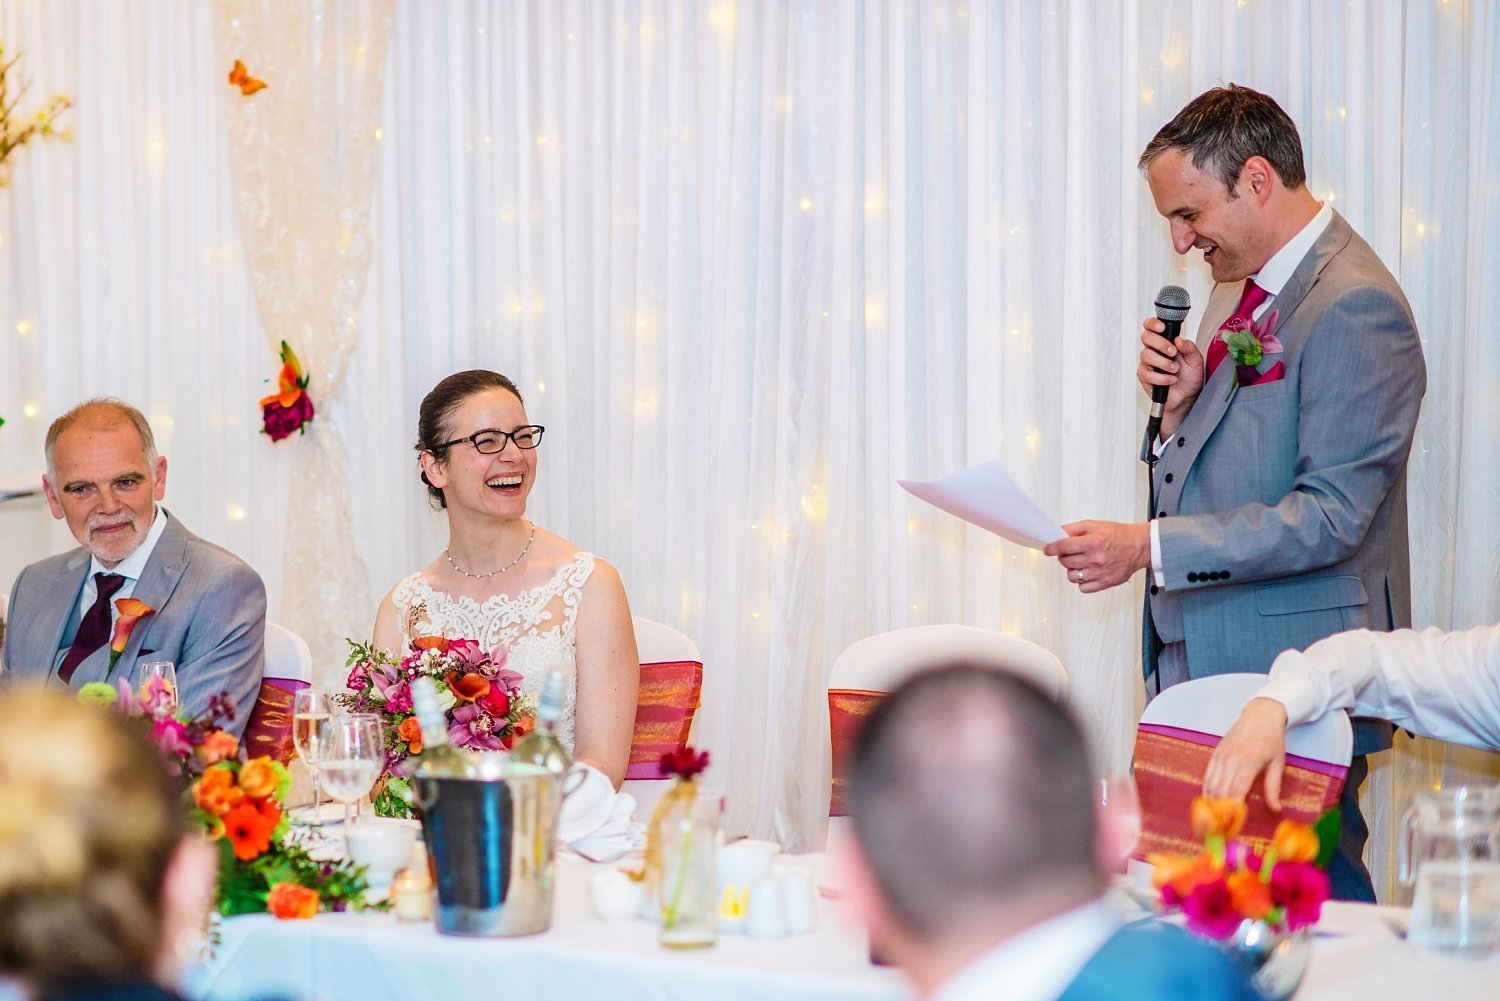 New Place Hotel Wedding - groom's speech, laughing bride